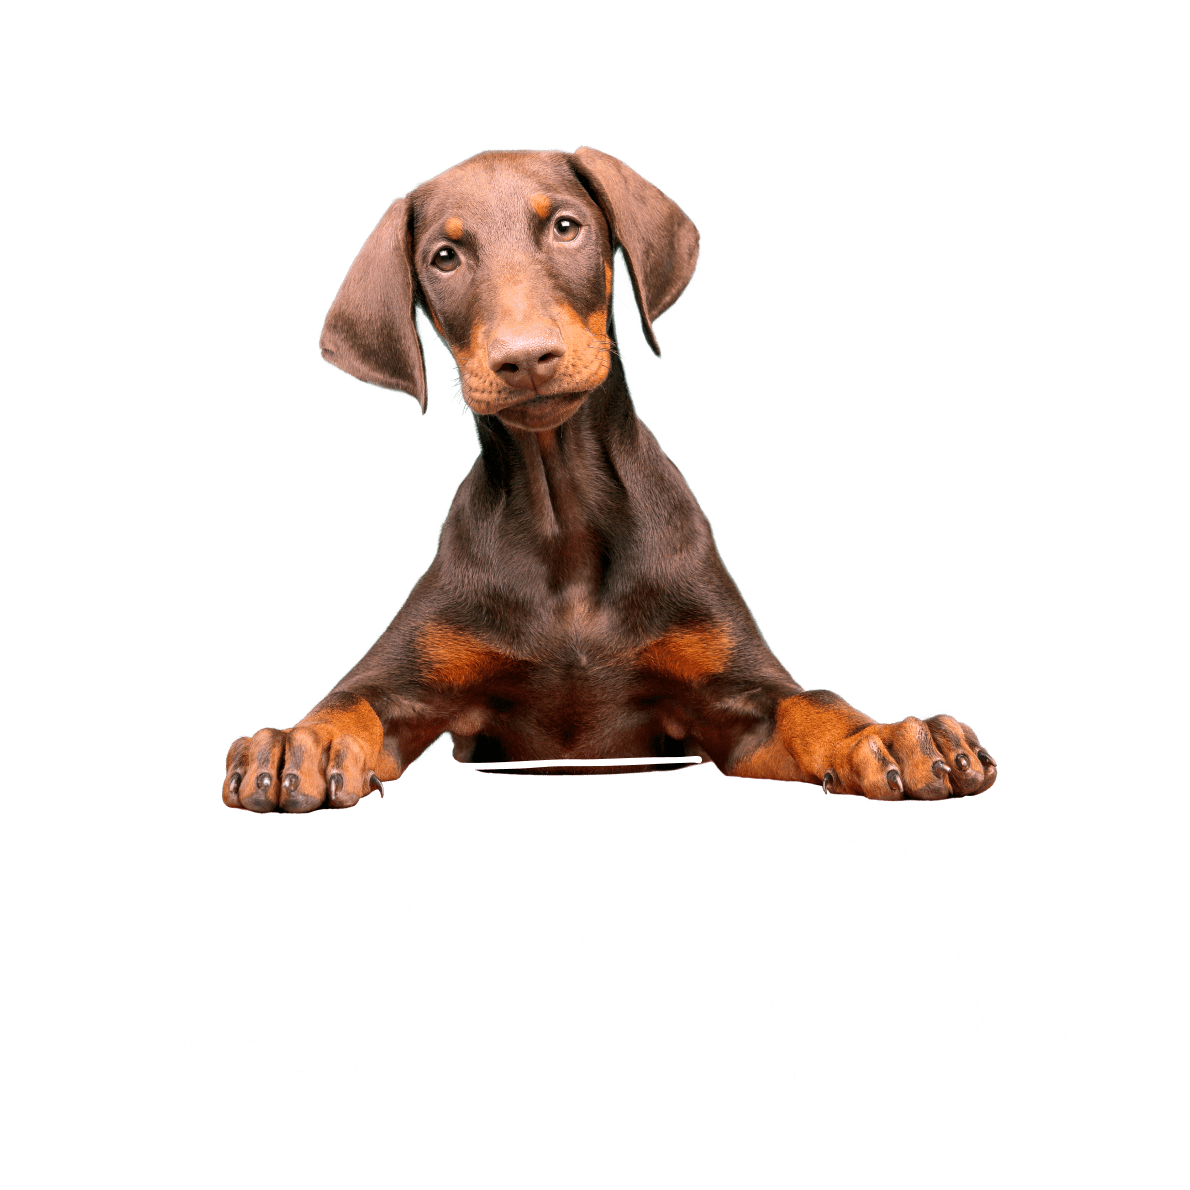 Dog with a graph drawing